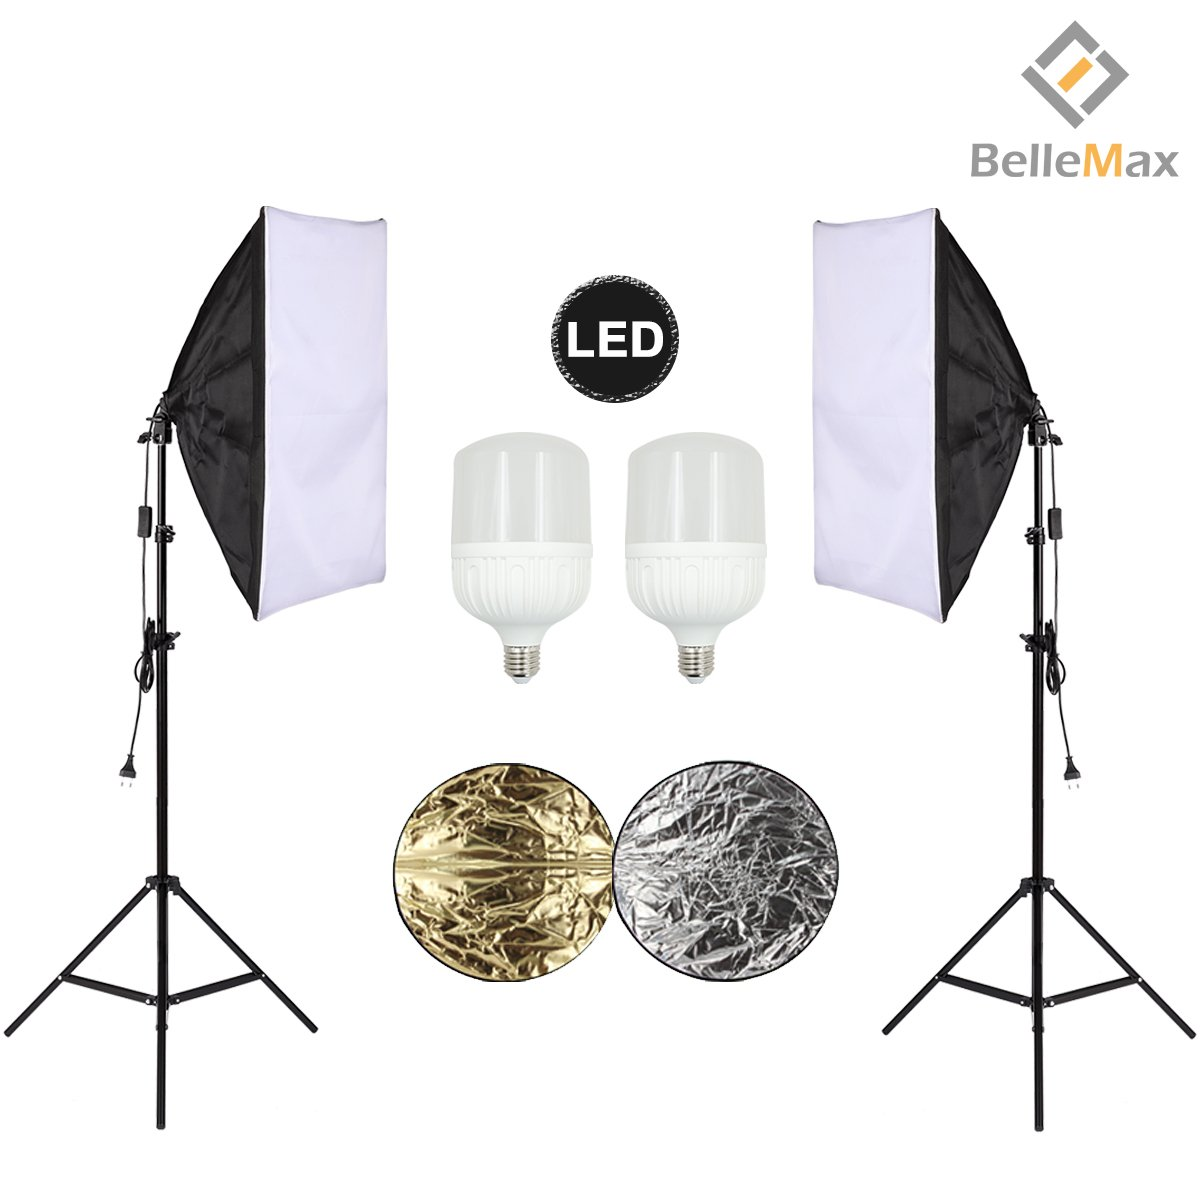 Belle Max (2)20''x28''Photography Softbox Lighting Kit Photo Studio Equipment,Including (2) 28W LED Bulbs,(1)24'' 2-in-1Reflector, Ideal for any vlog, portrait, costume and object photography by Belle Max (Image #1)